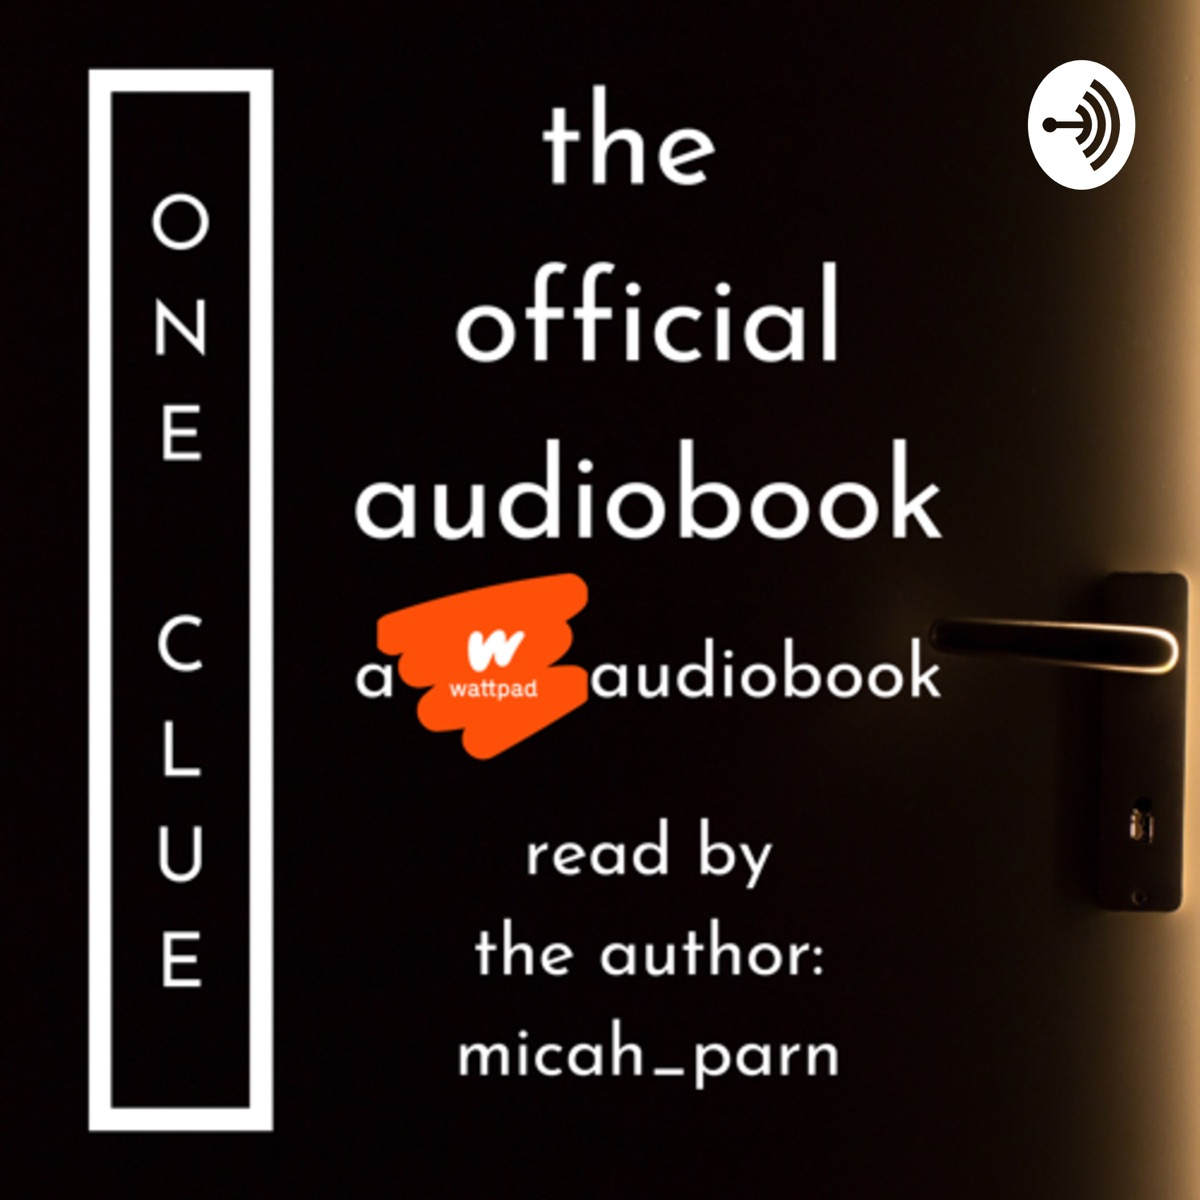 One Clue: The Official Audiobook